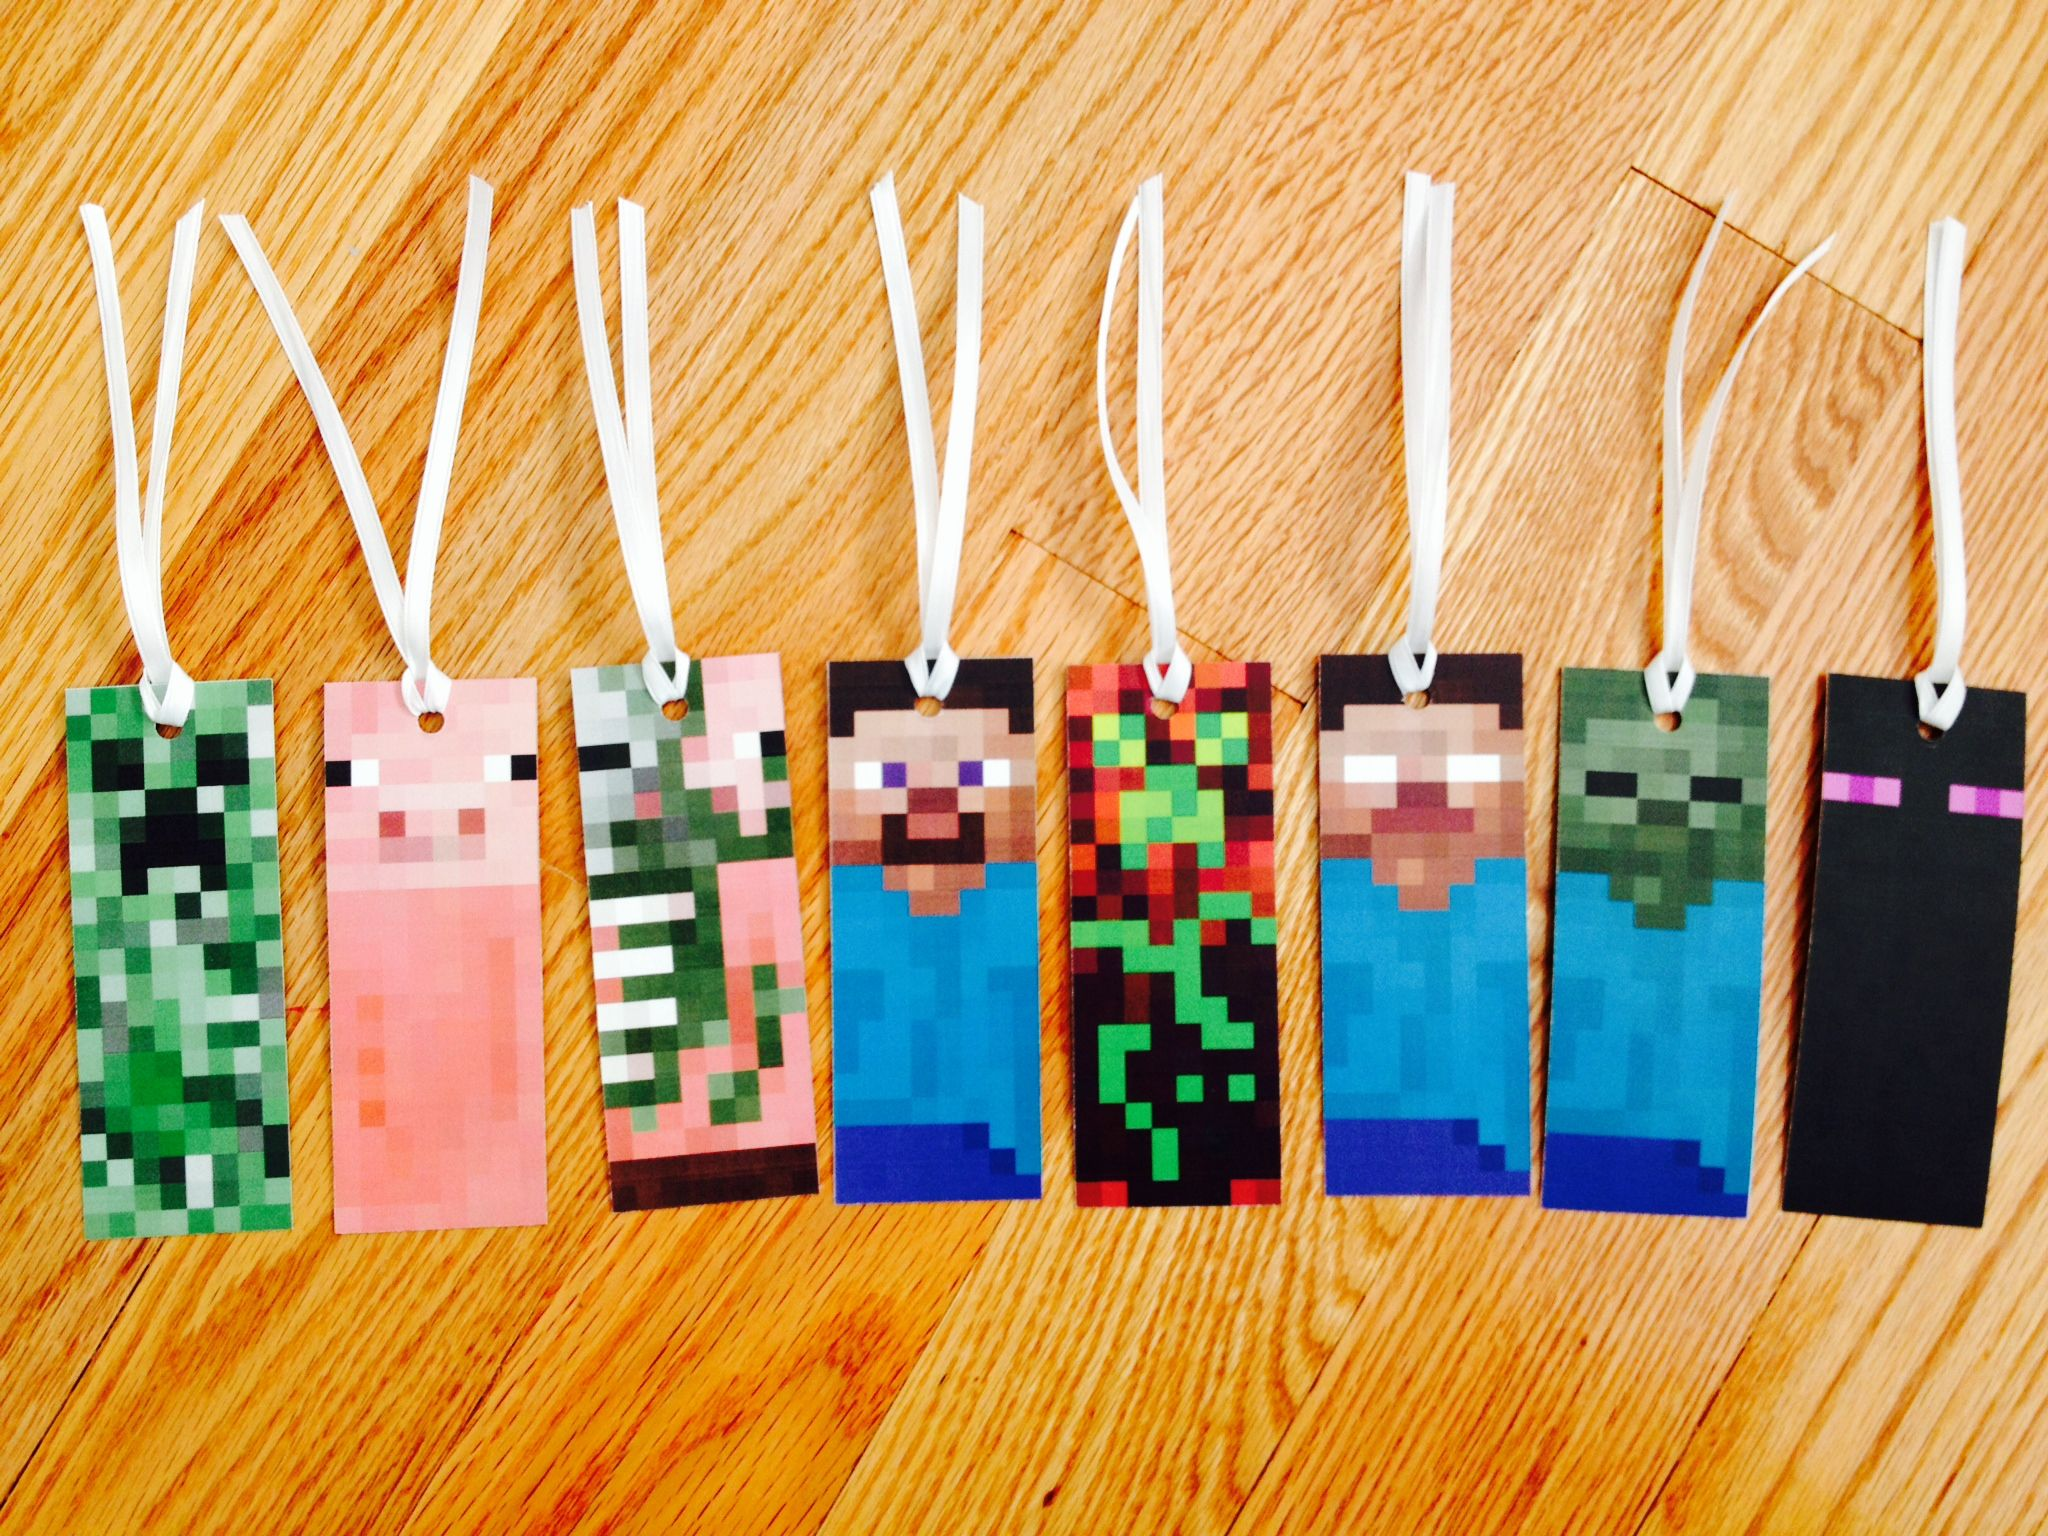 Minecraft Bookmarks Free Printable Available At Http Grungezombie Net 2014 01 Printable Minecr Minecraft Birthday Minecraft Crafts Minecraft Birthday Party